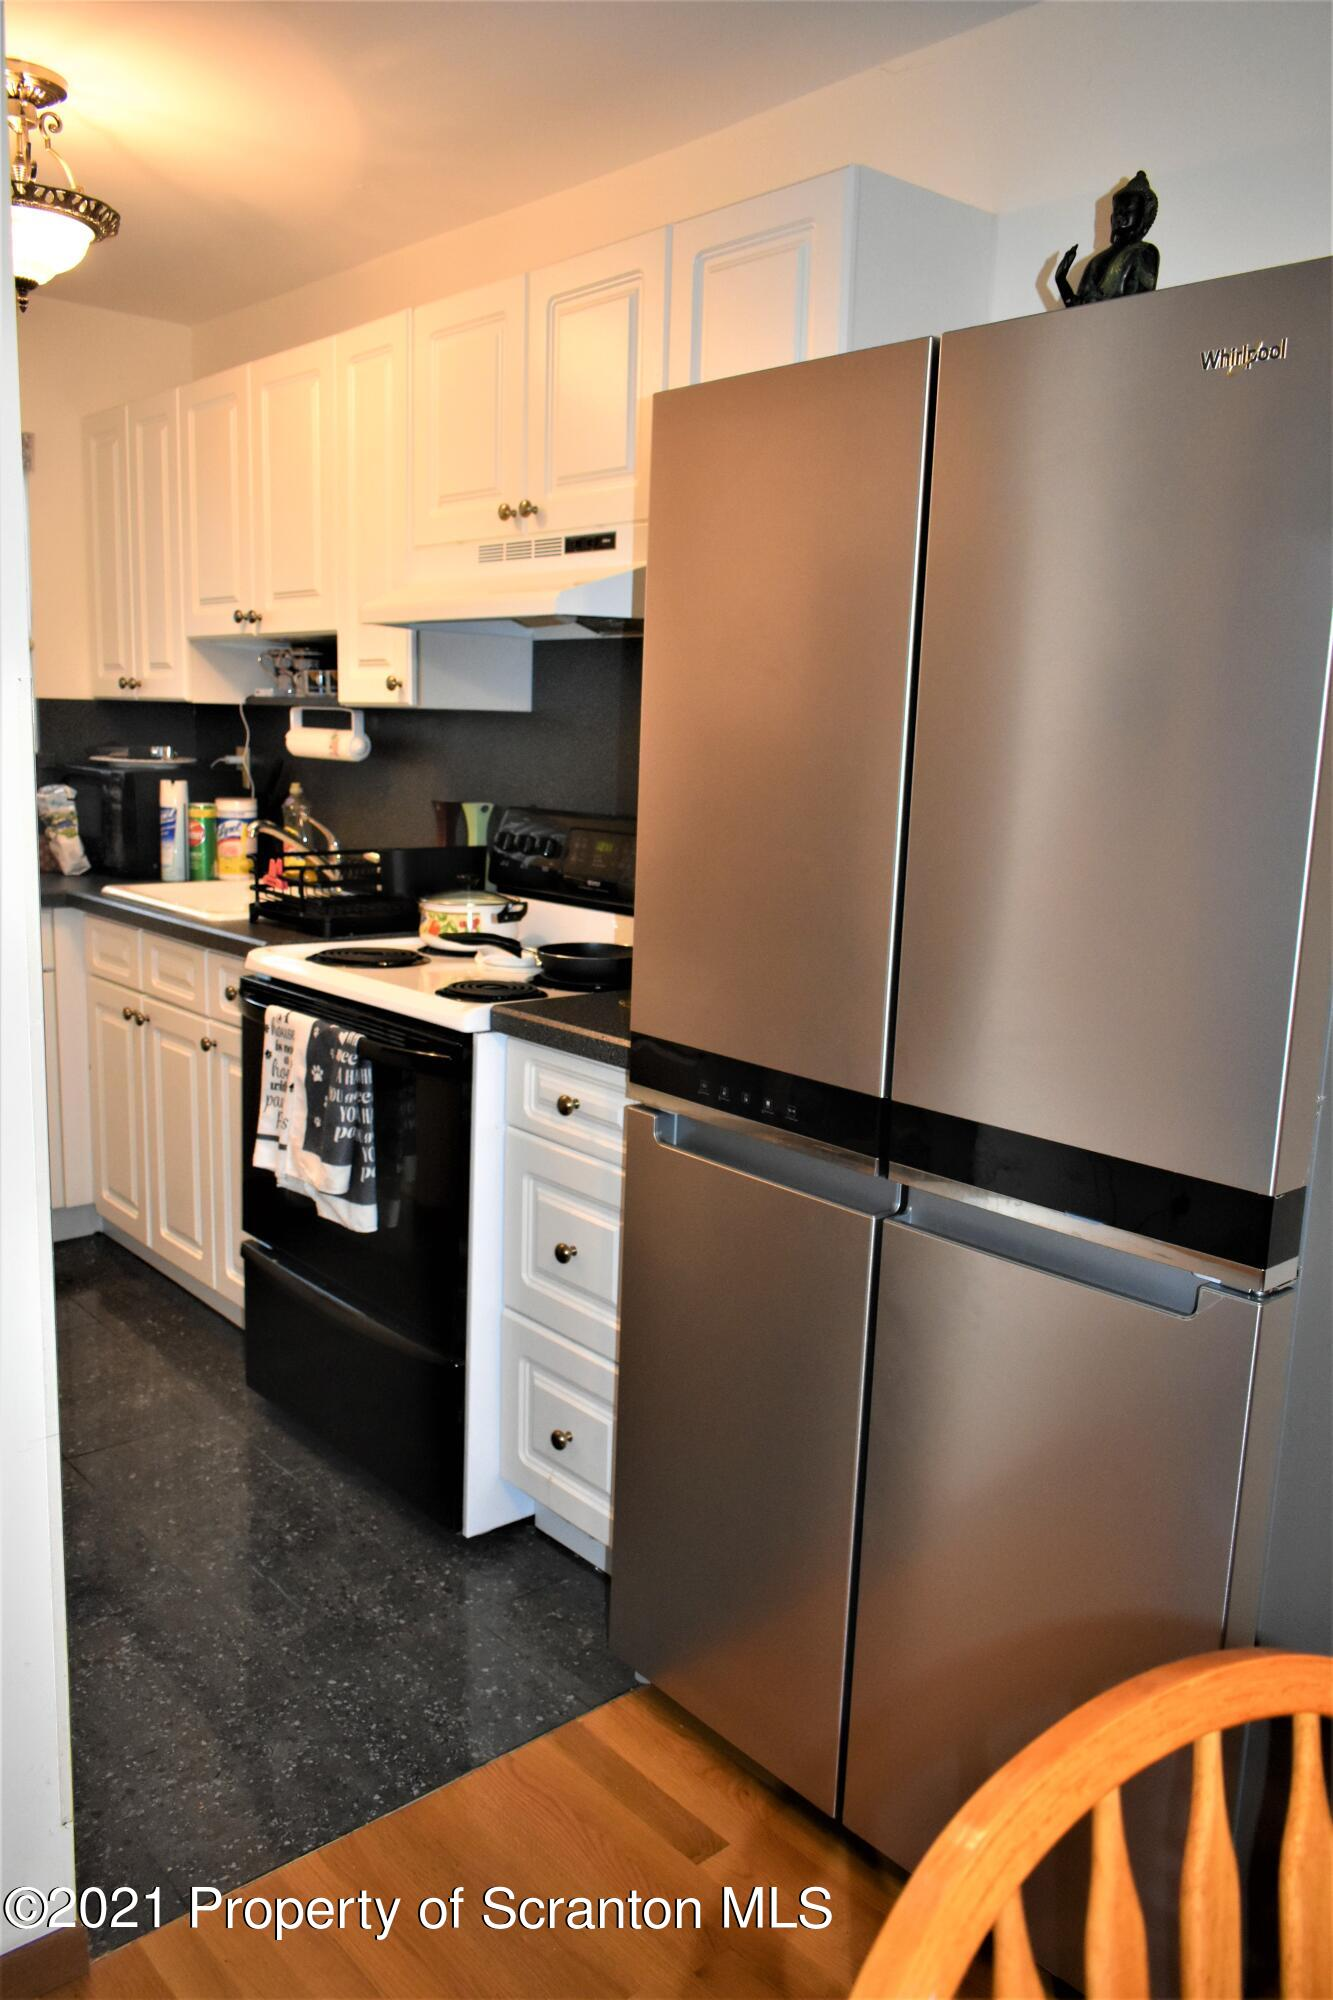 KITCHEN WITH RECENTLY PURCHASED REFRIGER